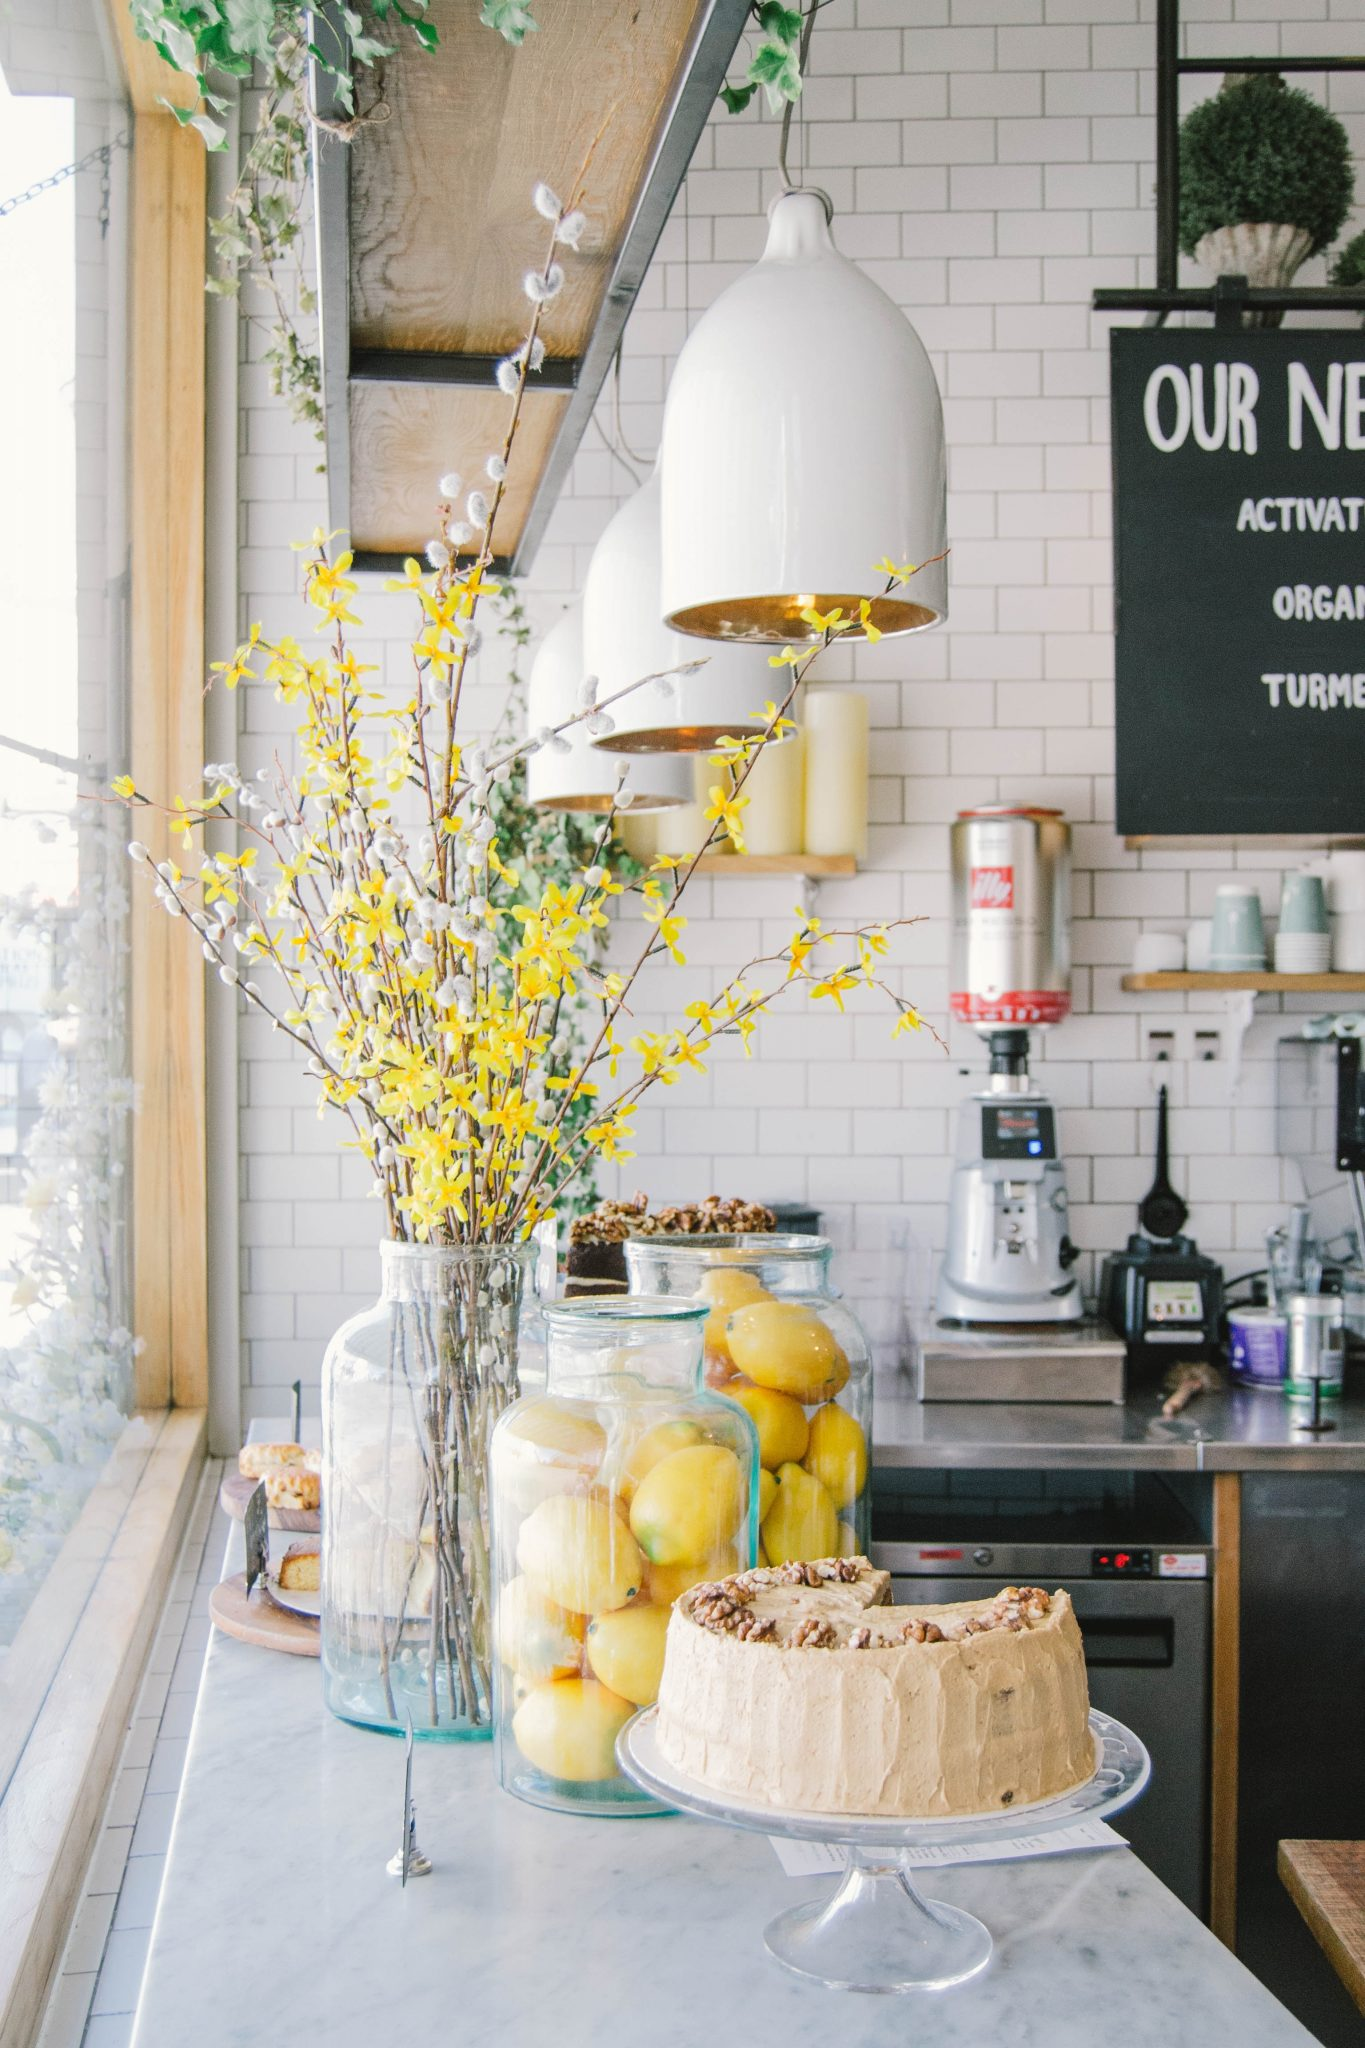 23 Impressive Kitchen Counter Decor [Ideas for Styling Your